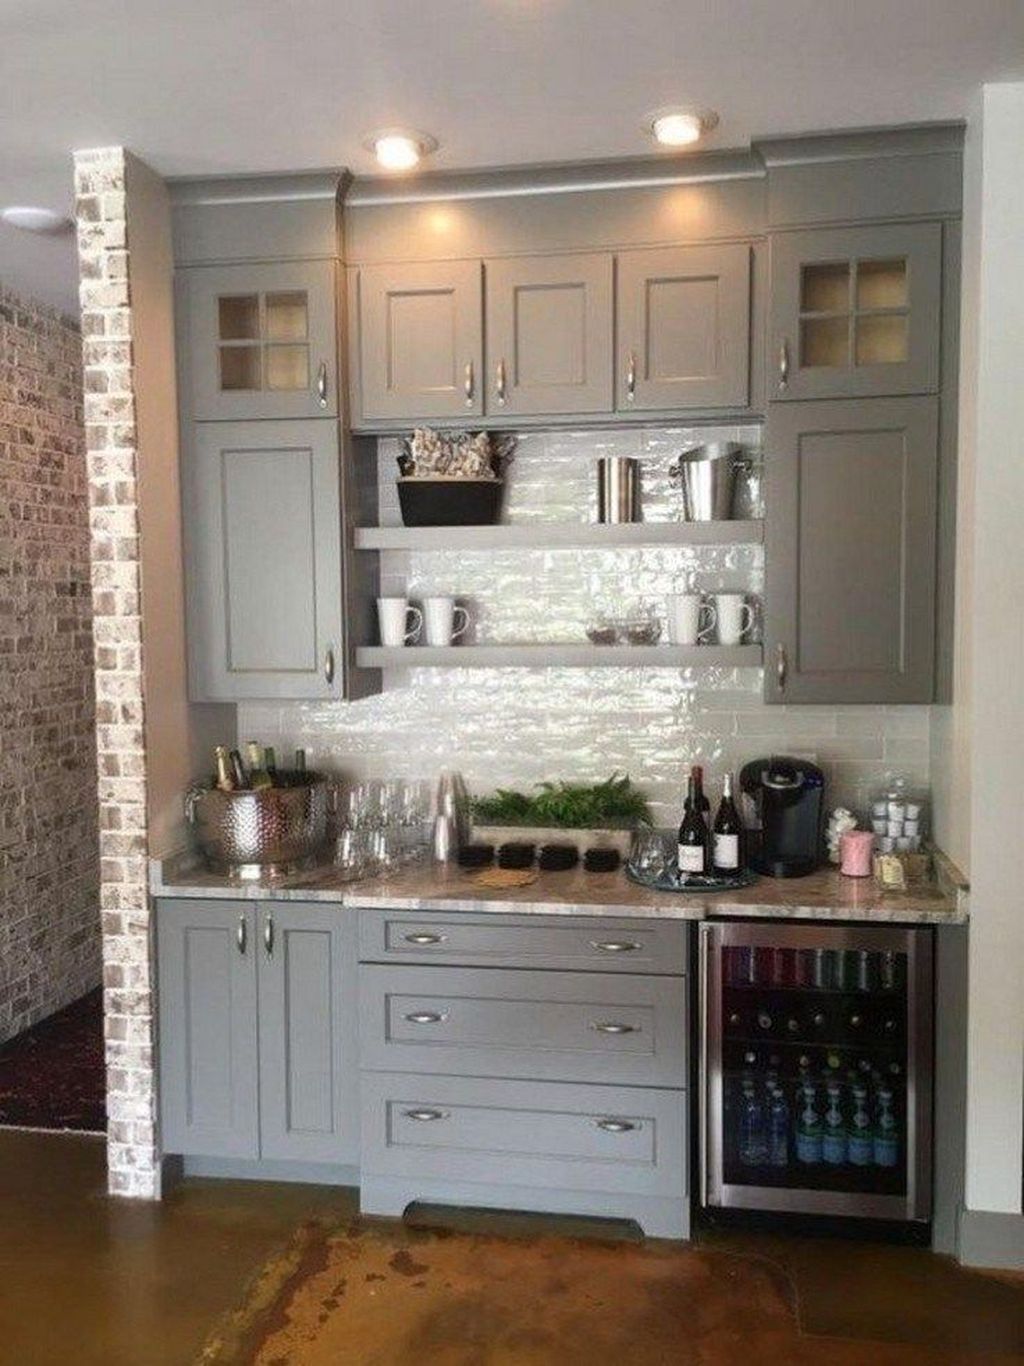 42 adorable small kitchen remodel design ideas on a budget kitchen remodel design kitchen on kitchen ideas on a budget id=98180